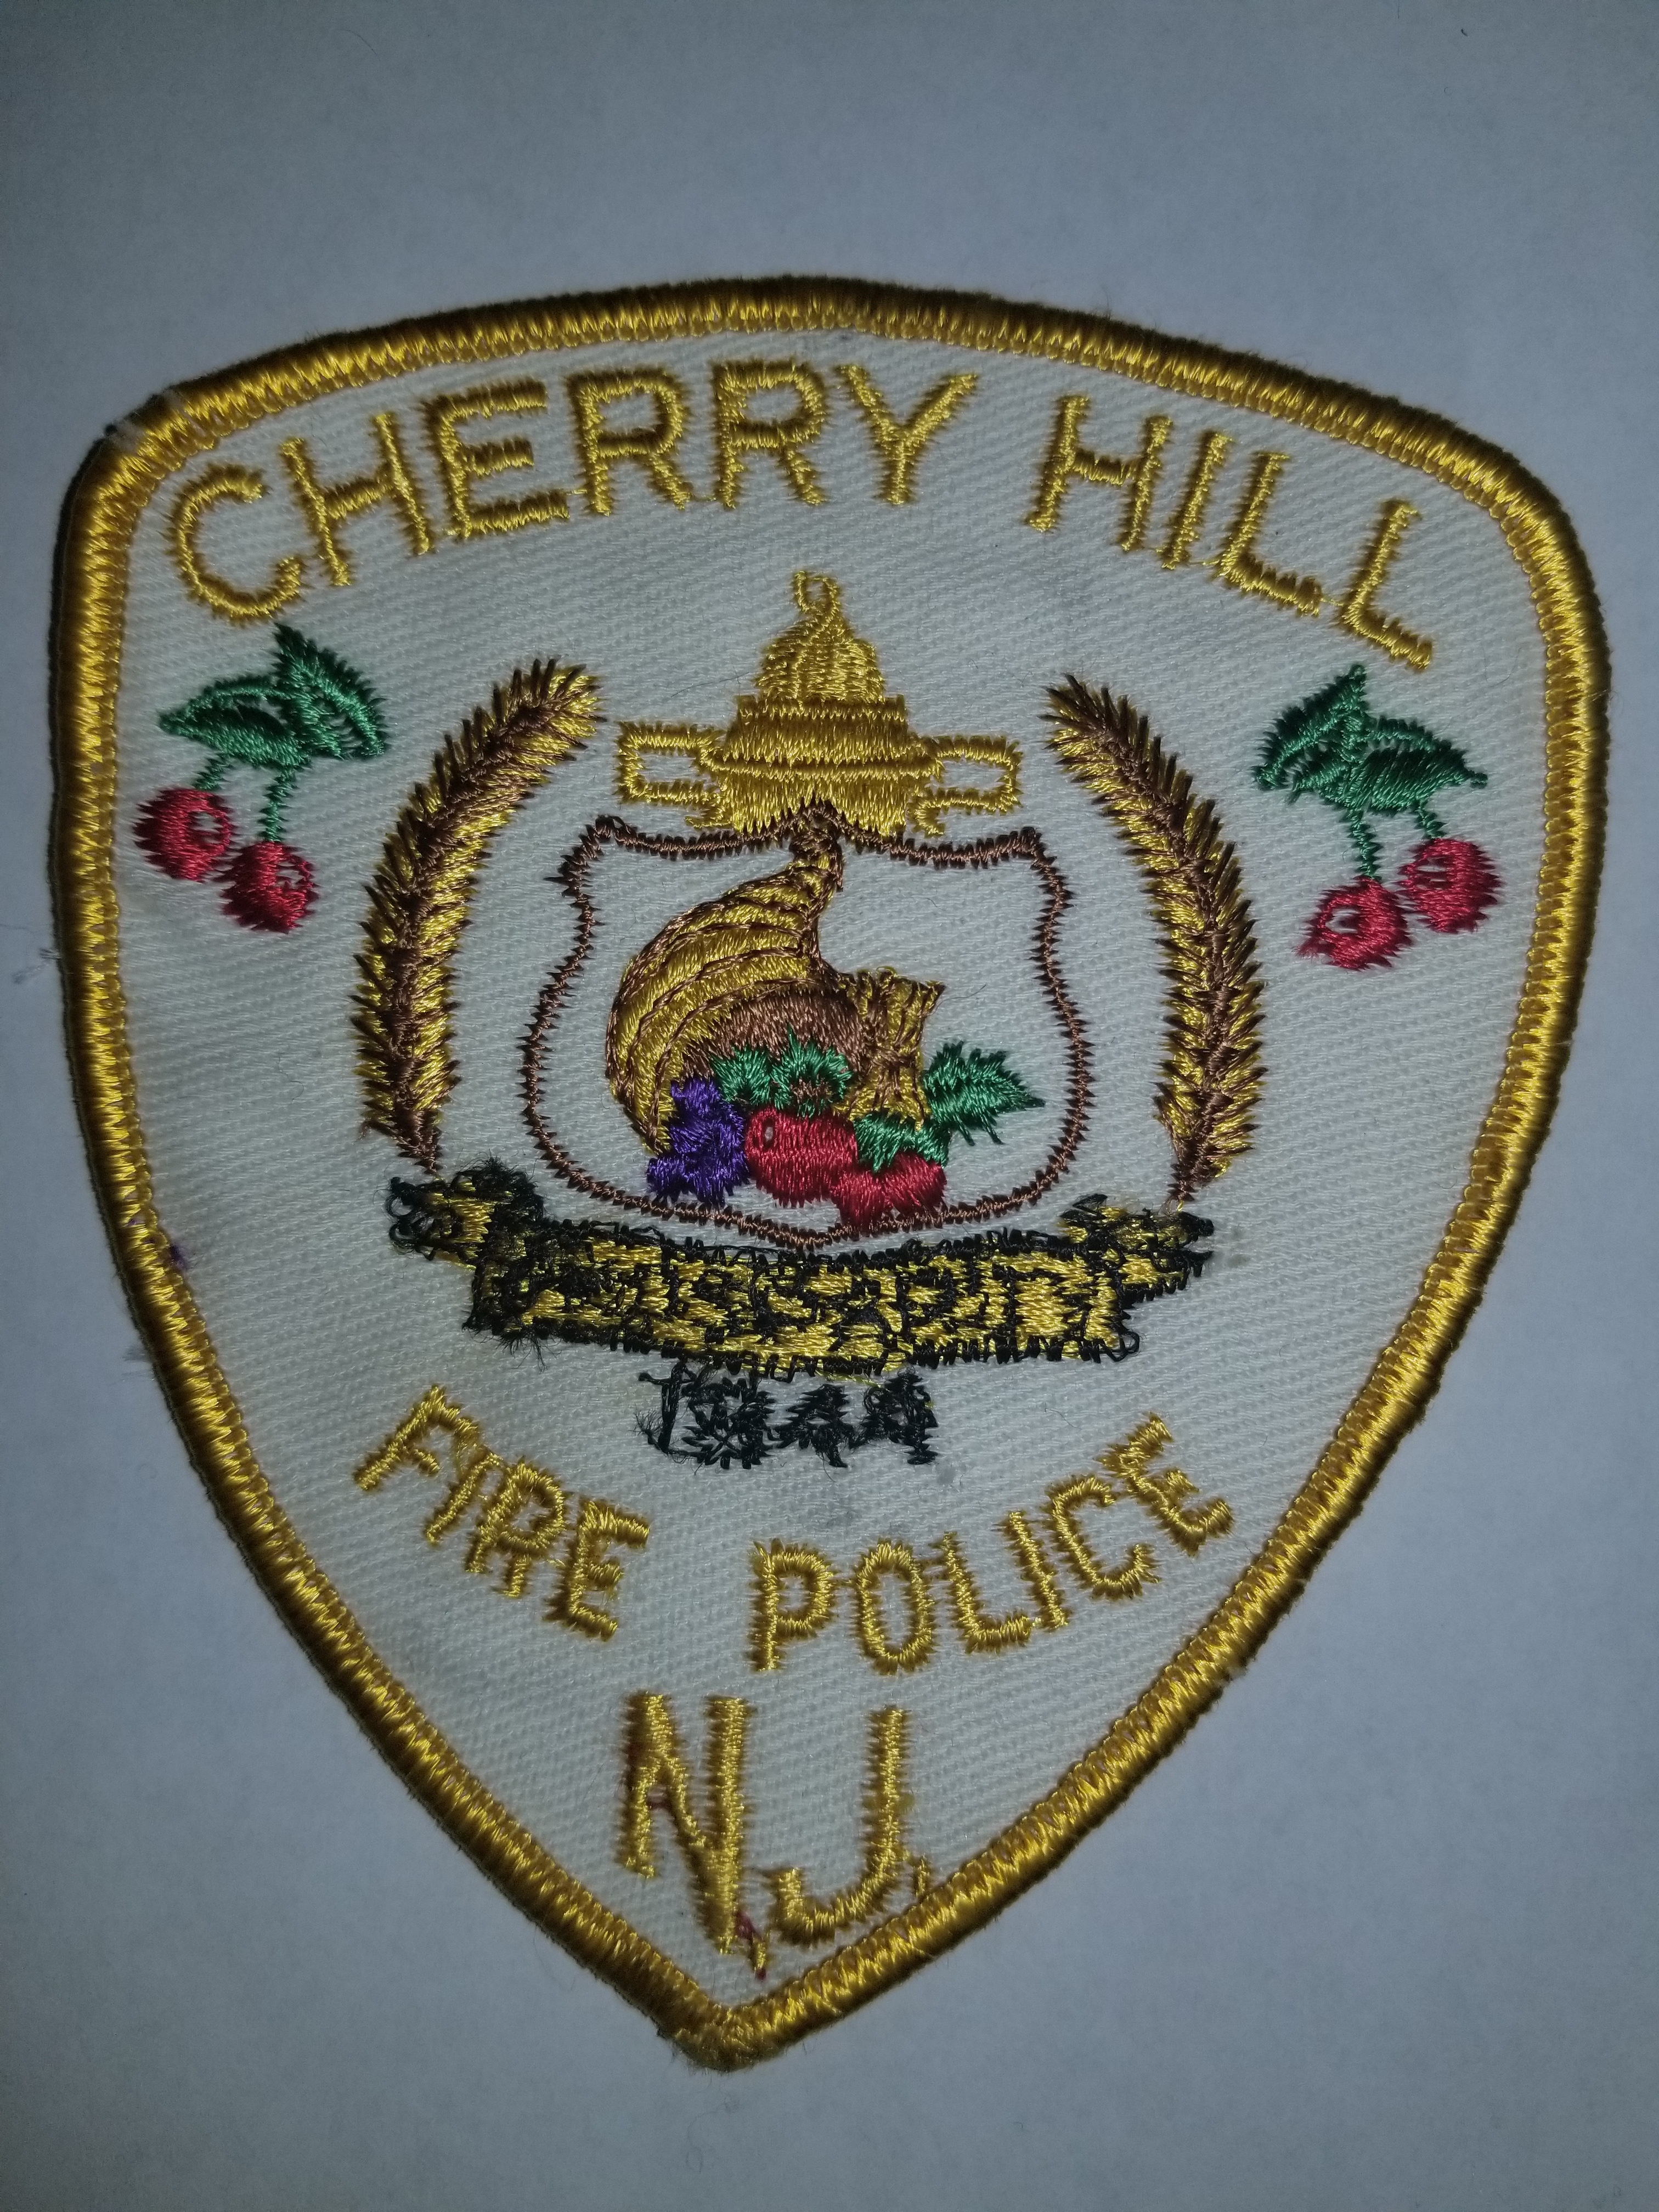 Cherry Hill Fire Police NJ